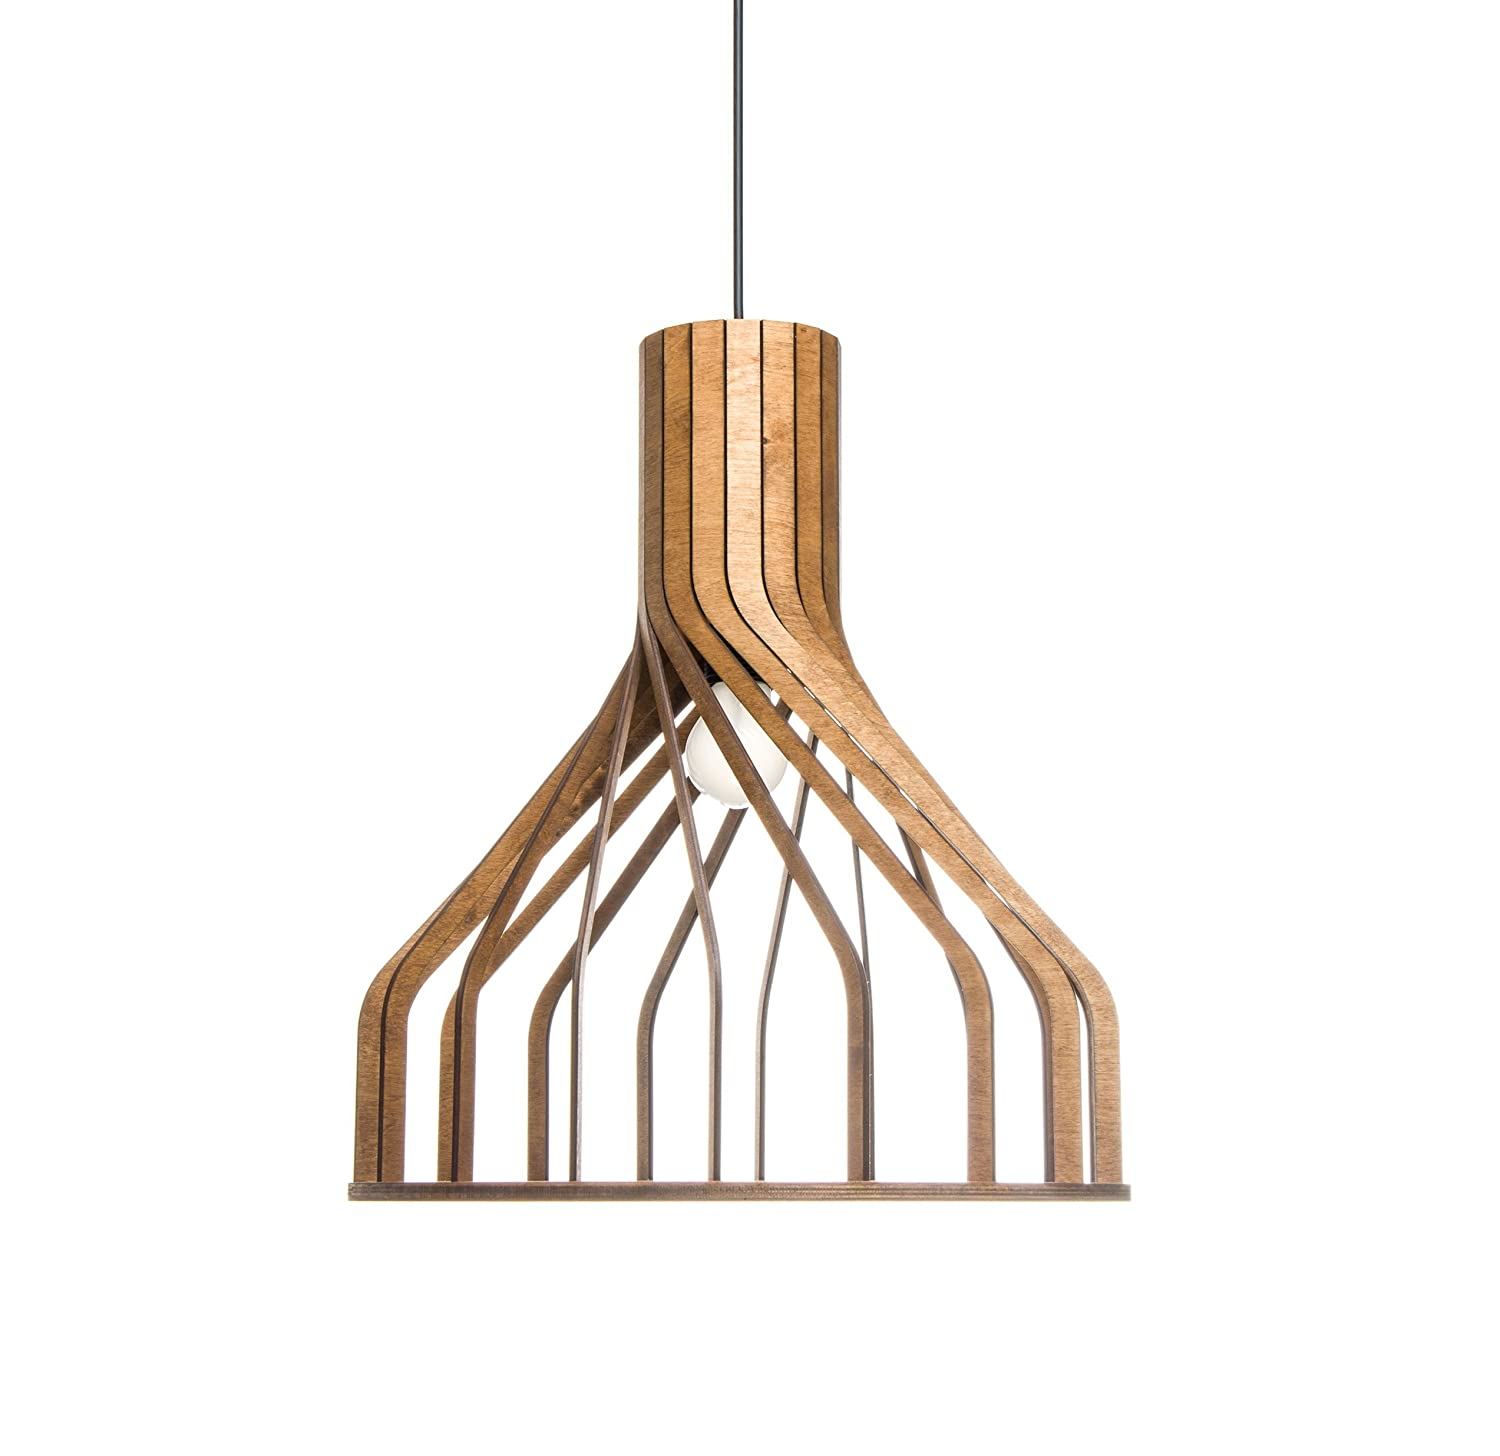 Wood Pendant Lighting For Kitchen Island Dining Room Living Room Hanging Light Fixture Unique Wooden Lampshade For Modern Minimalistic